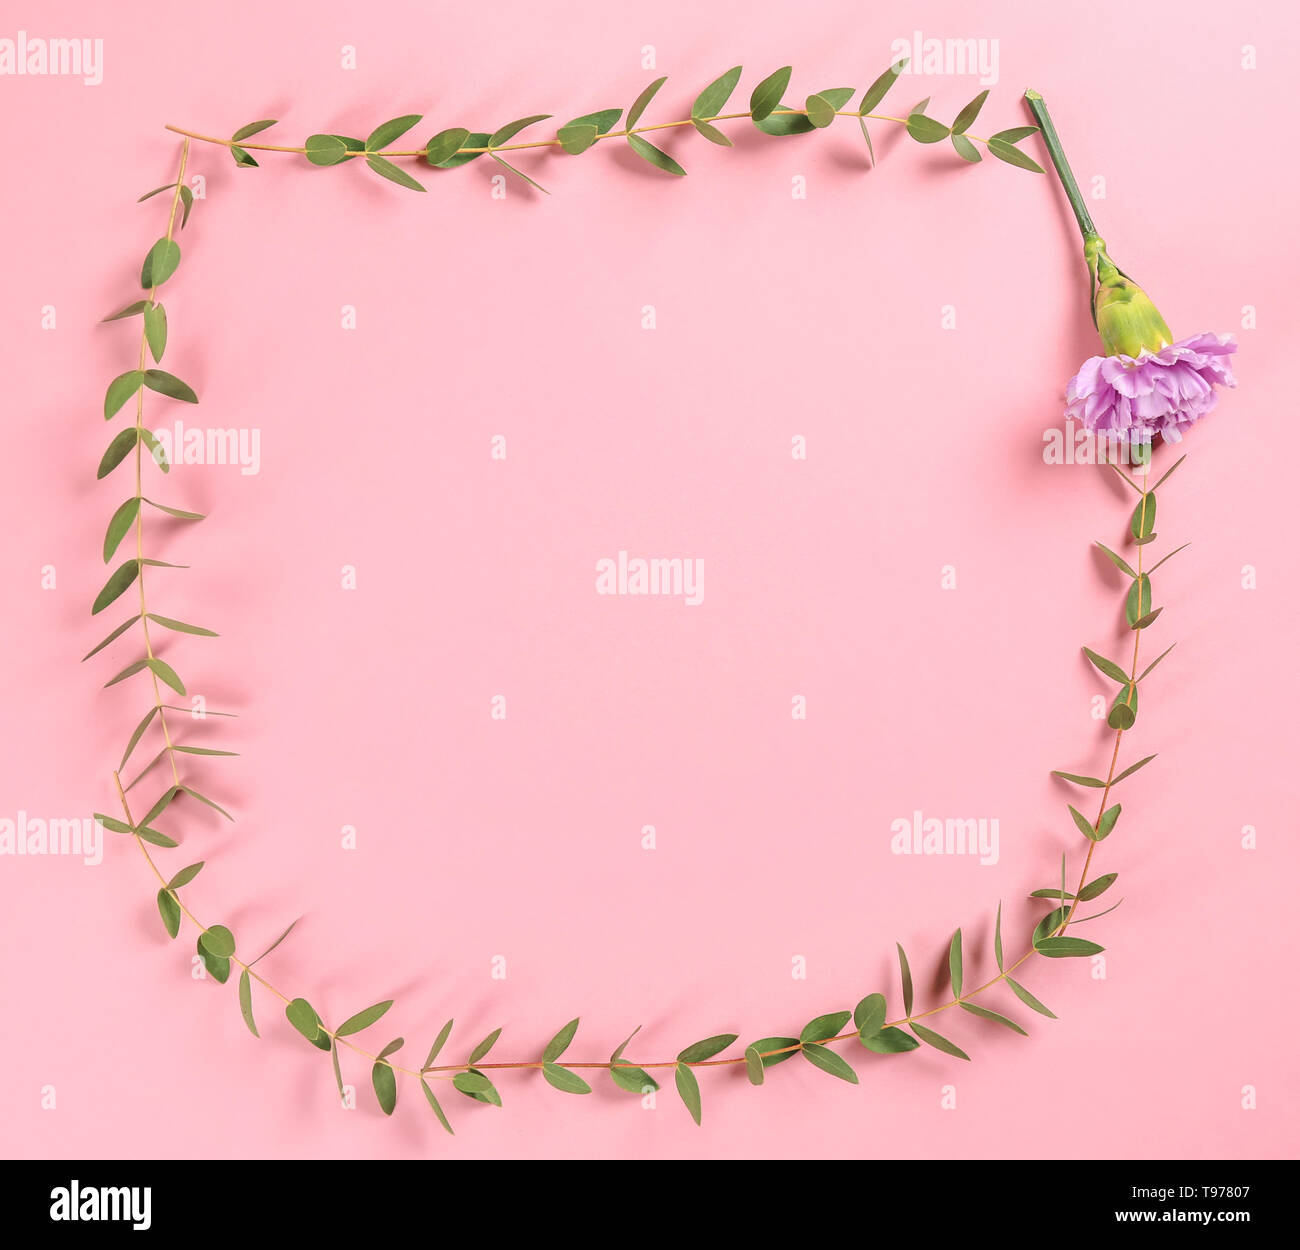 Frame made of green eucalyptus branches and flower on color background - Stock Image